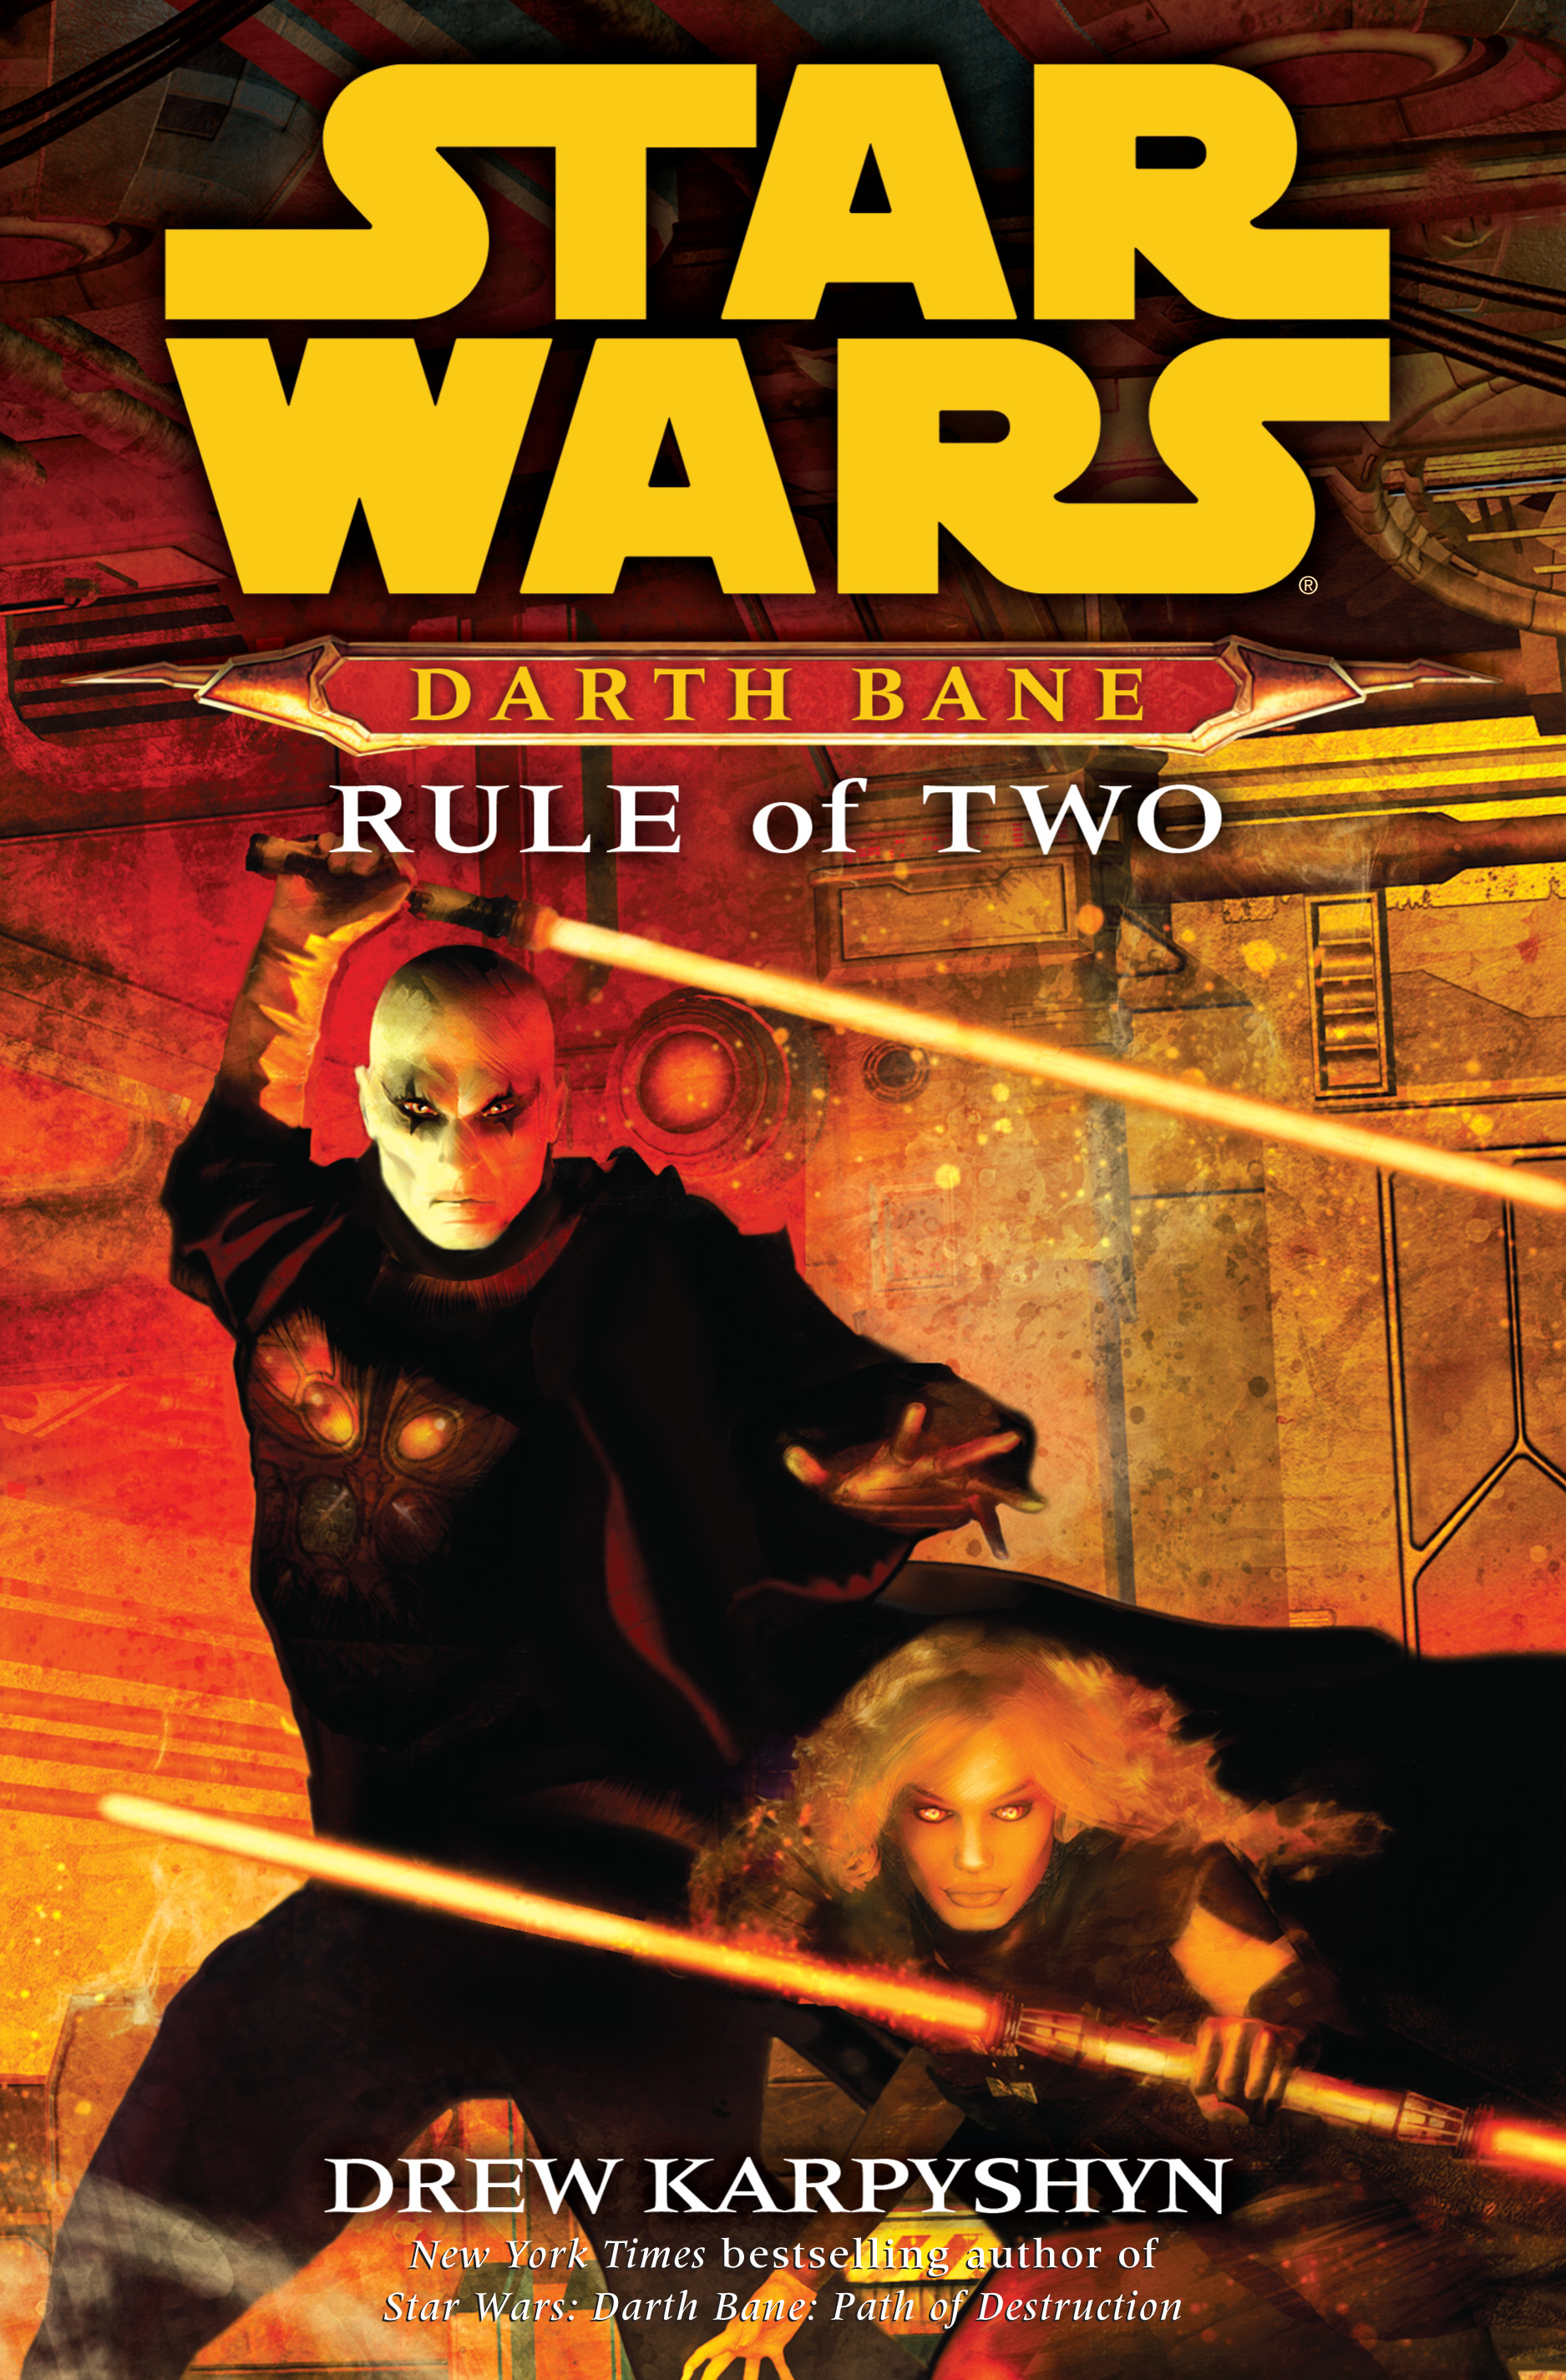 Star Wars Darth Bane: Rule of Two